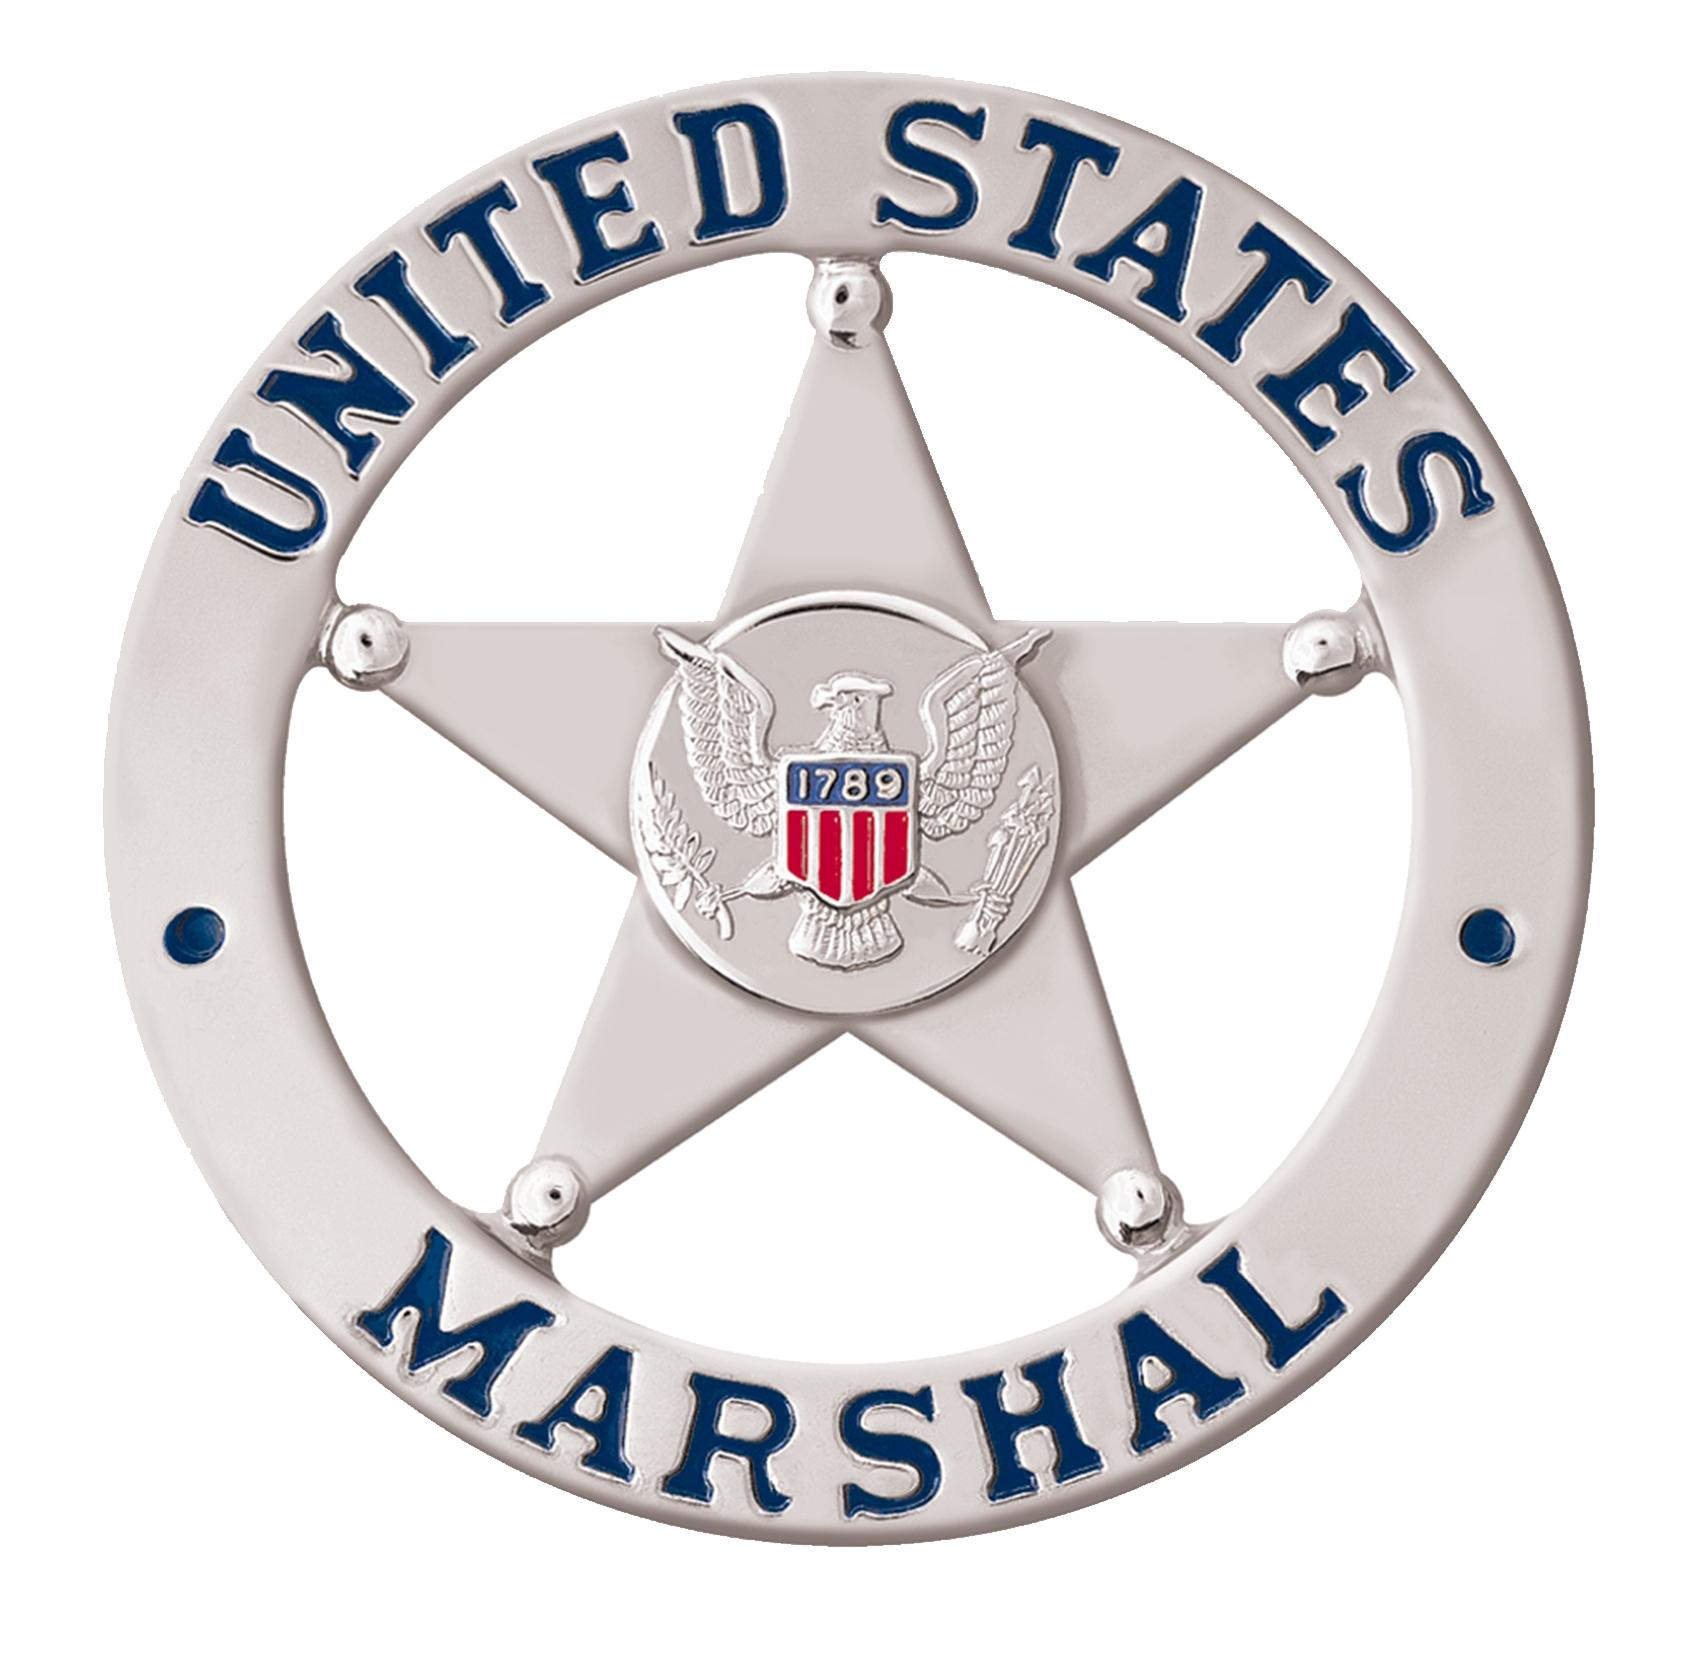 02/28/20 U.S. Marshals Service ~ Notice of SEALED BID Auction